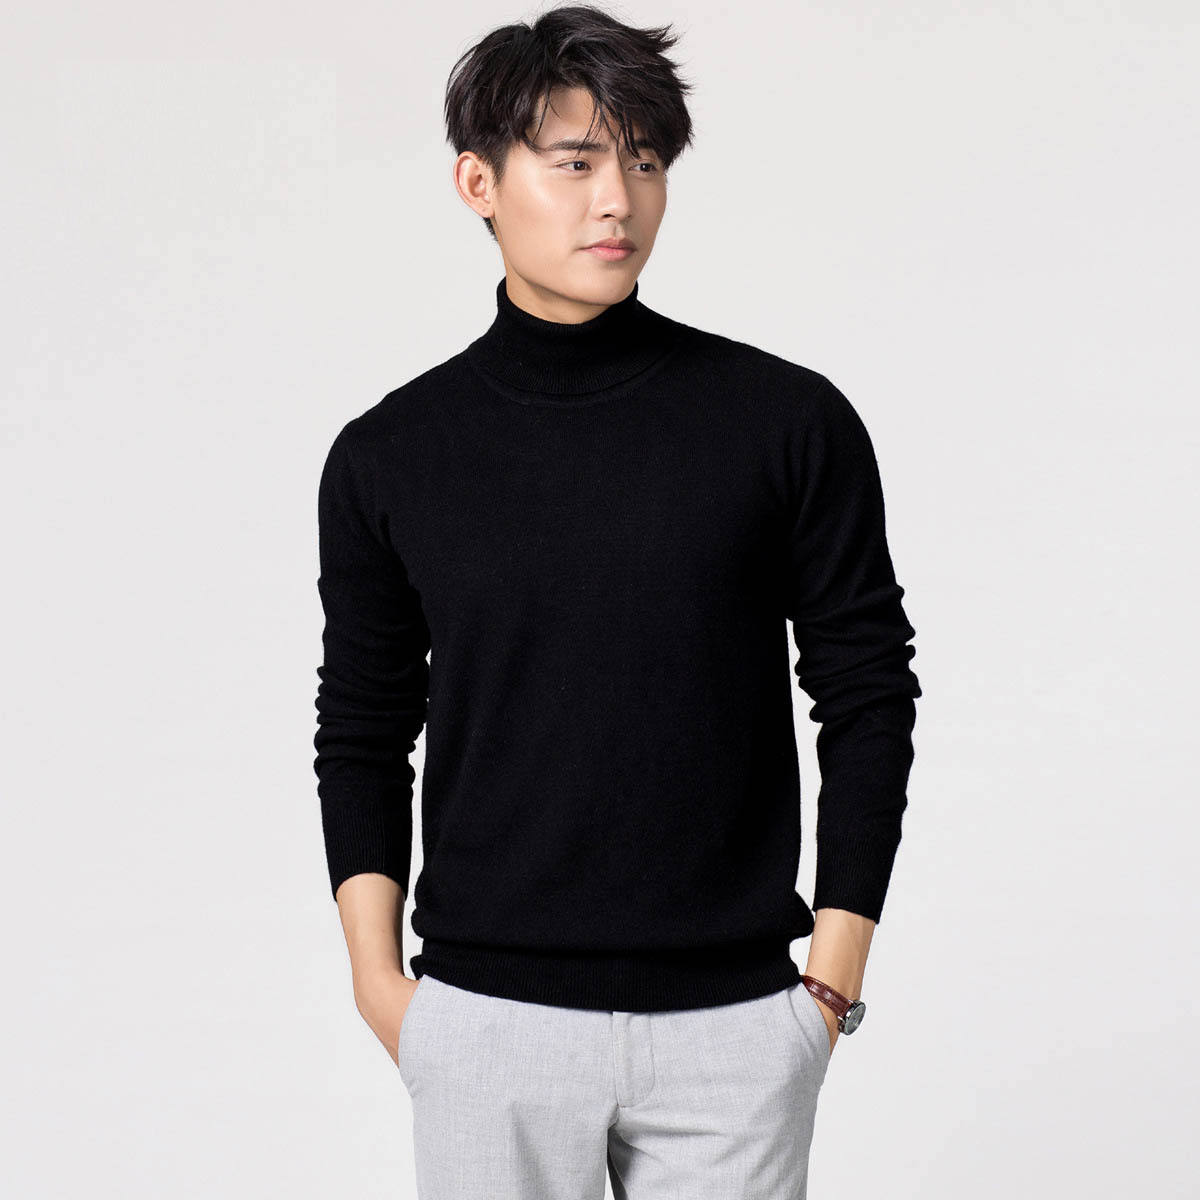 mens Turtleneck 100% cashmere sweater winter thickening large size pure cashmere knitted bottoming shirt